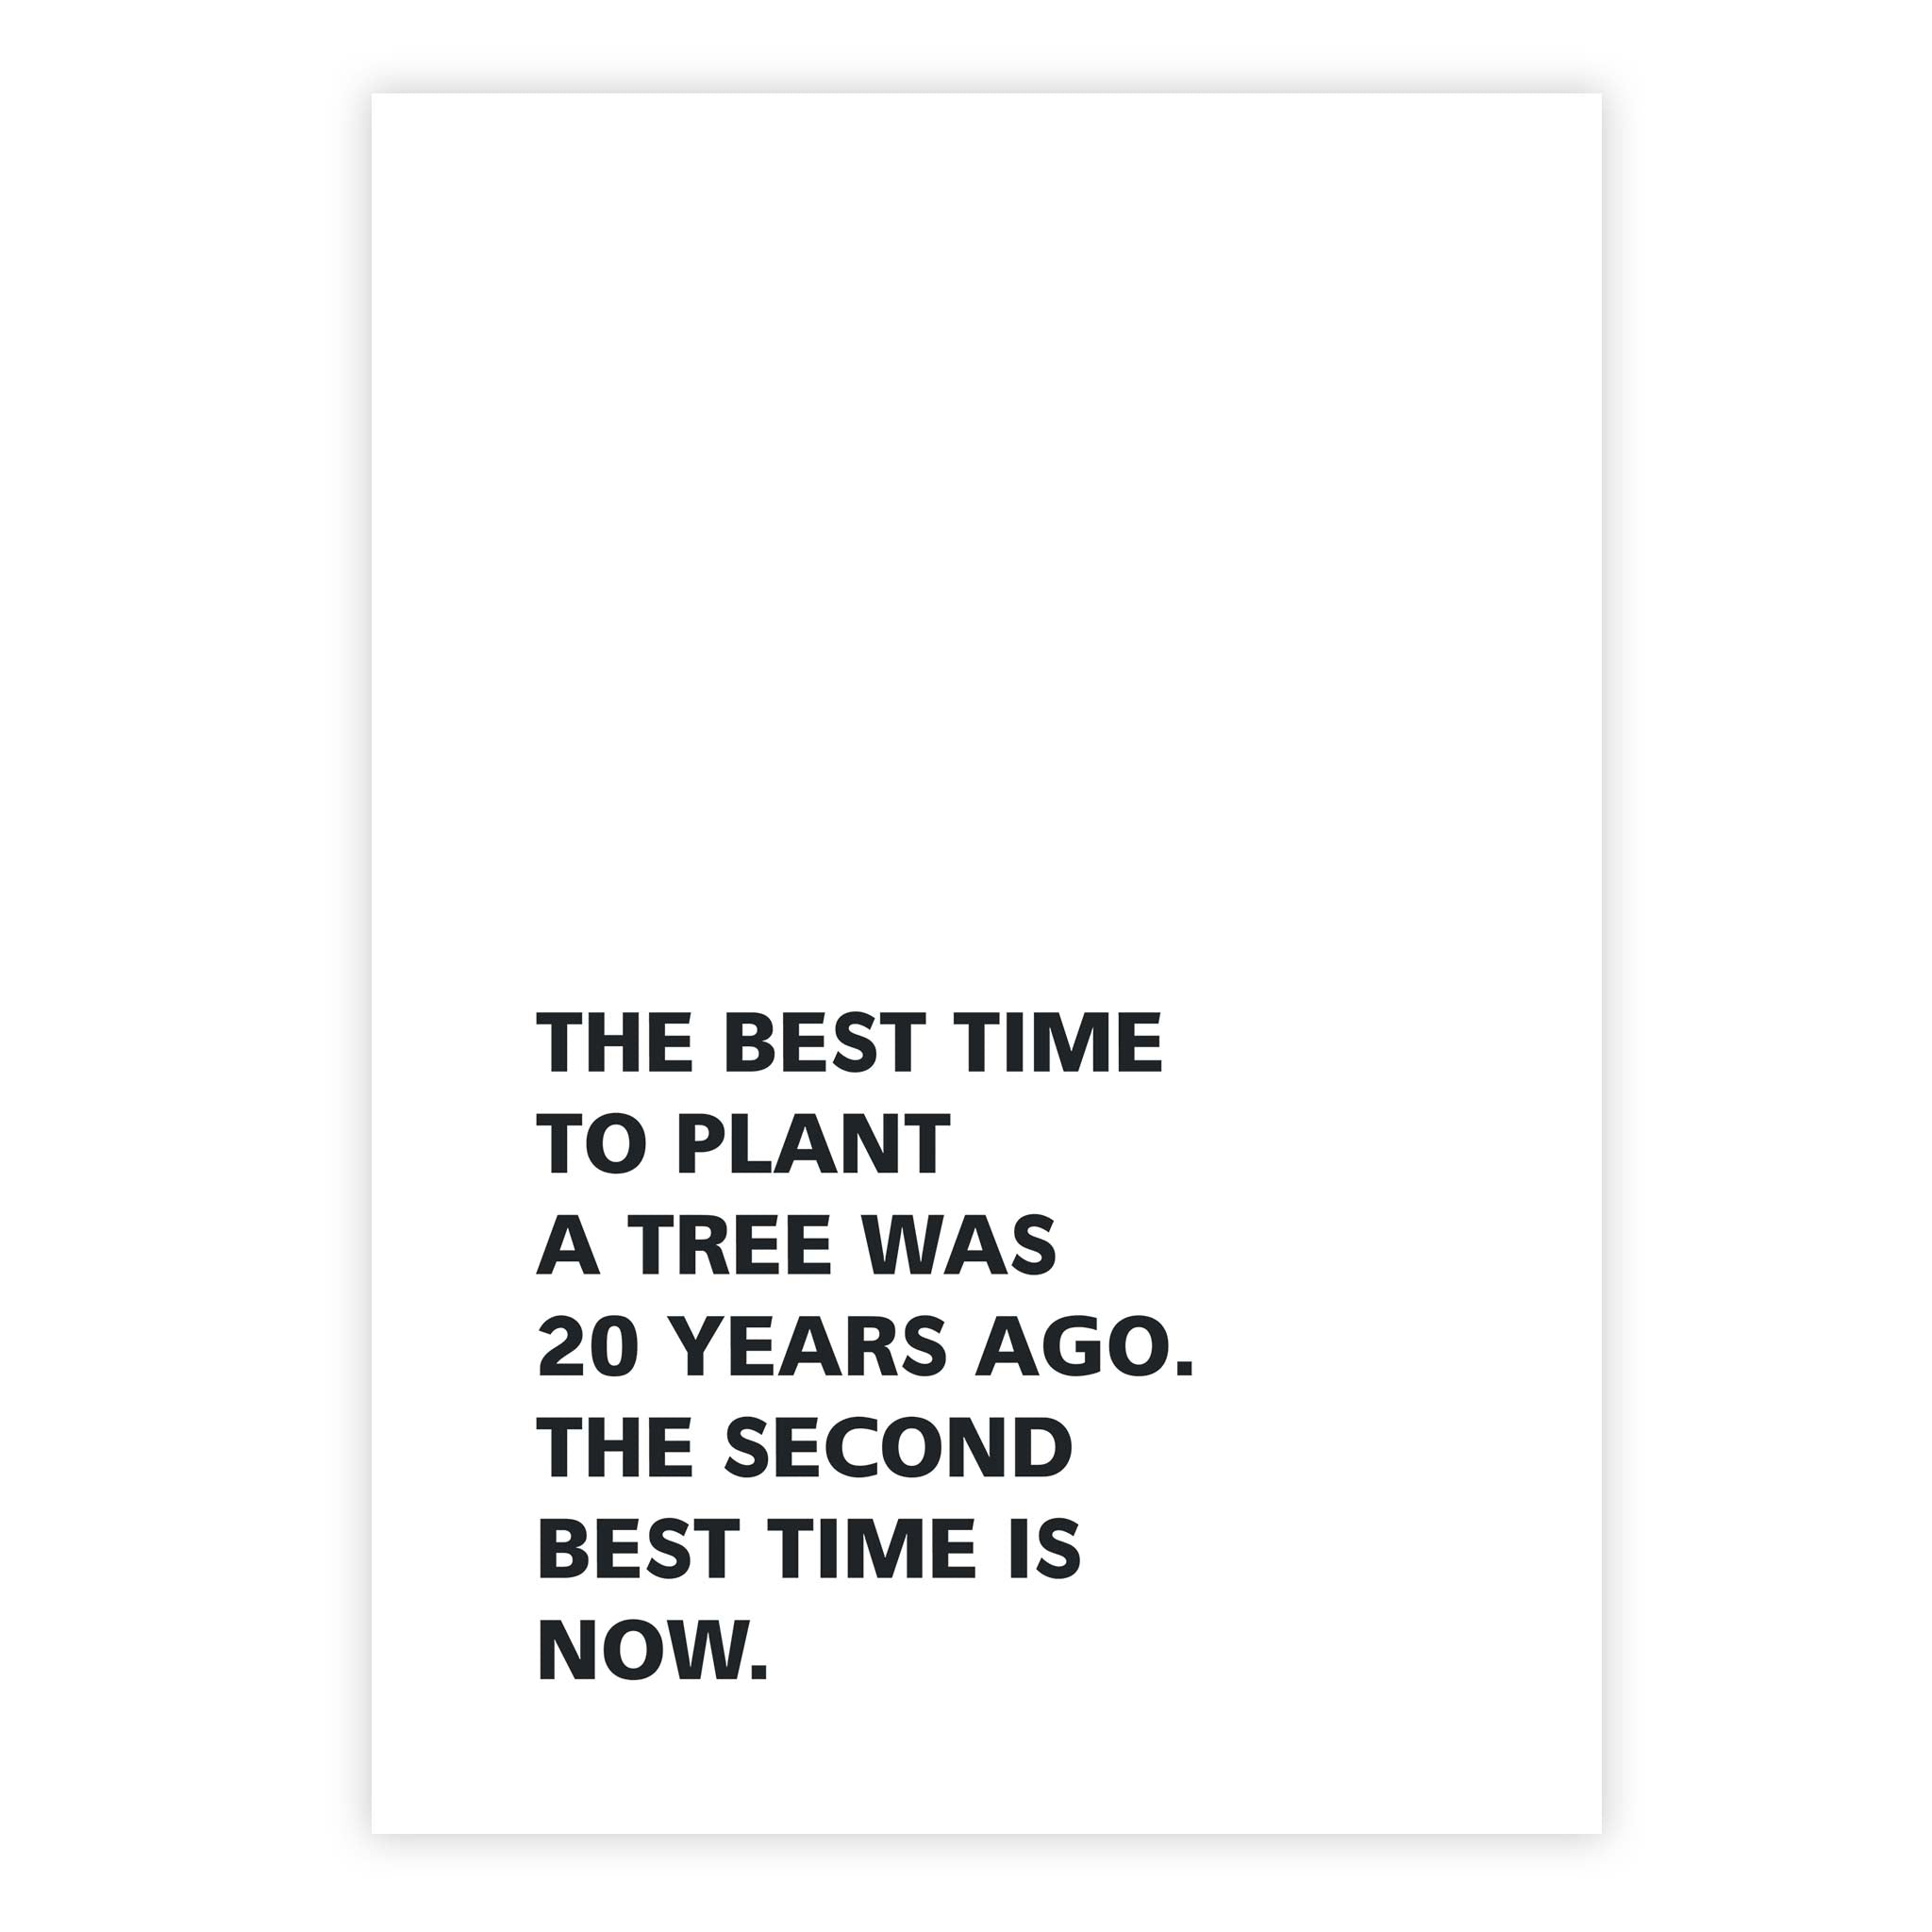 The best time to plant a tree was 20 years ago. The second best time is now